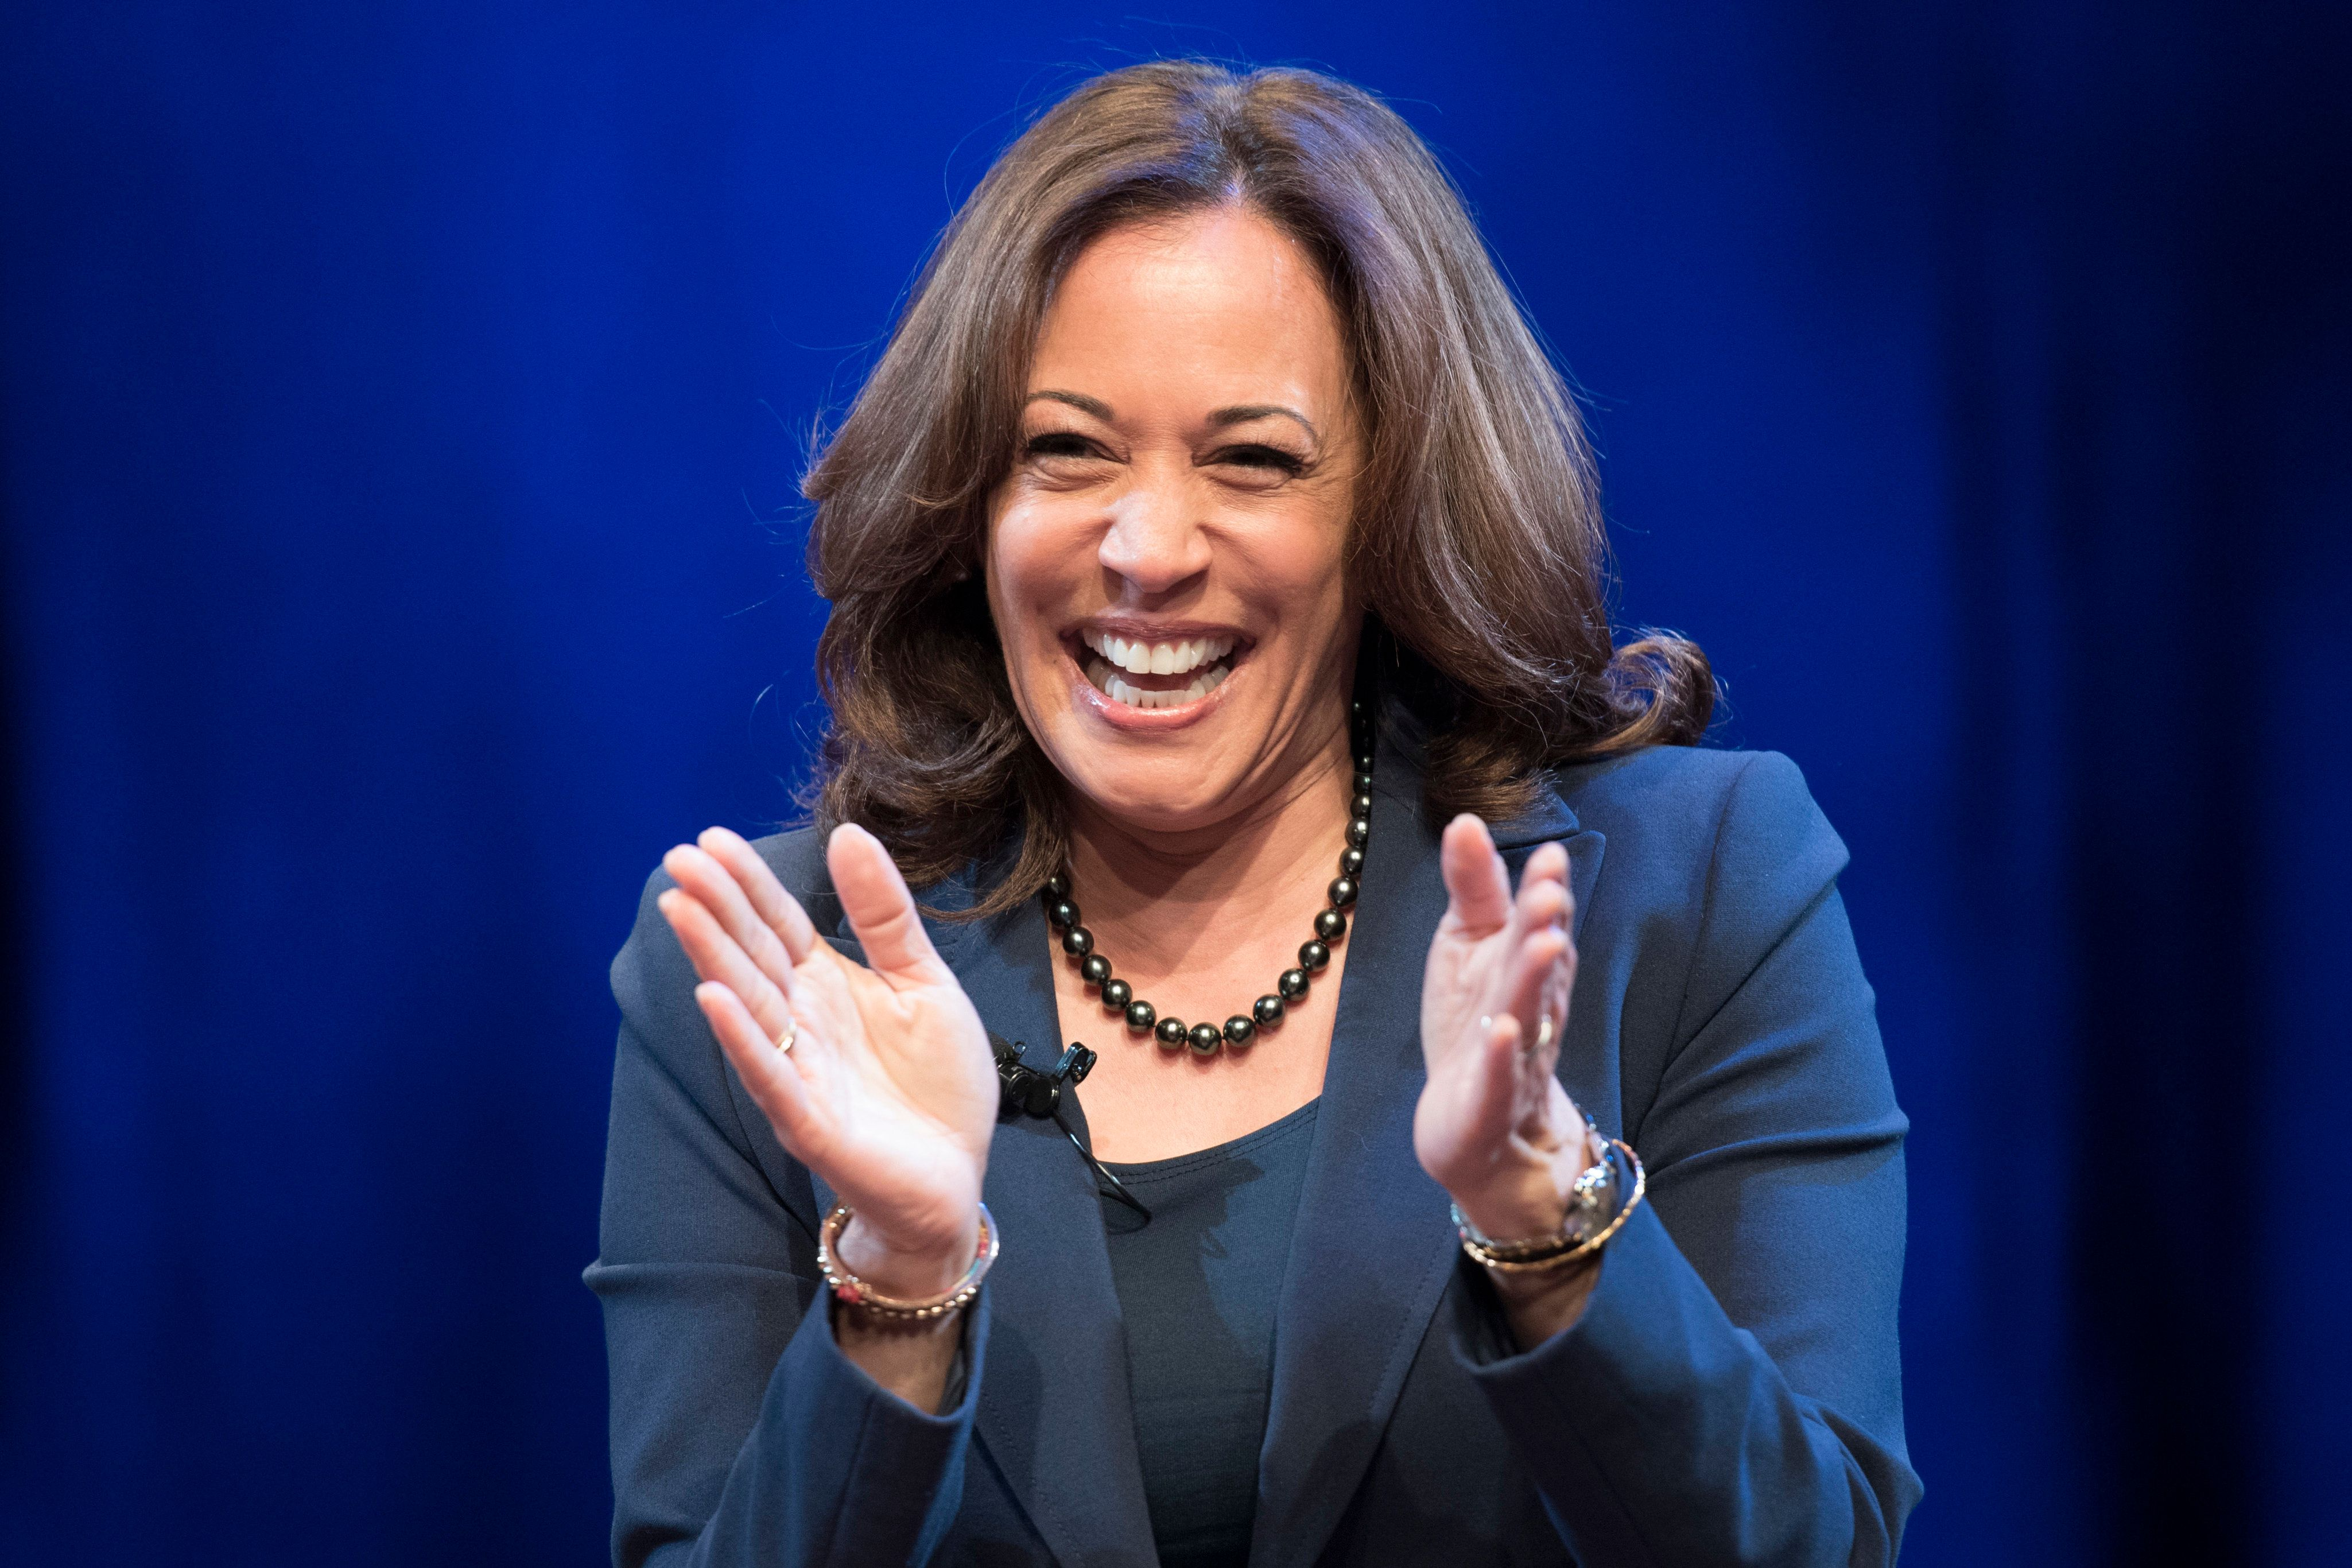 In this Jan. 9, 2019 photo, Sen. Kamala Harris, D-Calif., greets the audience at George Washington University in Washington, during an event kicking off her book tour.  Harris, a first-term senator and former California attorney general known for her rigorous questioning of President Donald Trump's nominees, entered the Democratic presidential race on Monday.  (AP Photo/Sait Serkan Gurbuz)